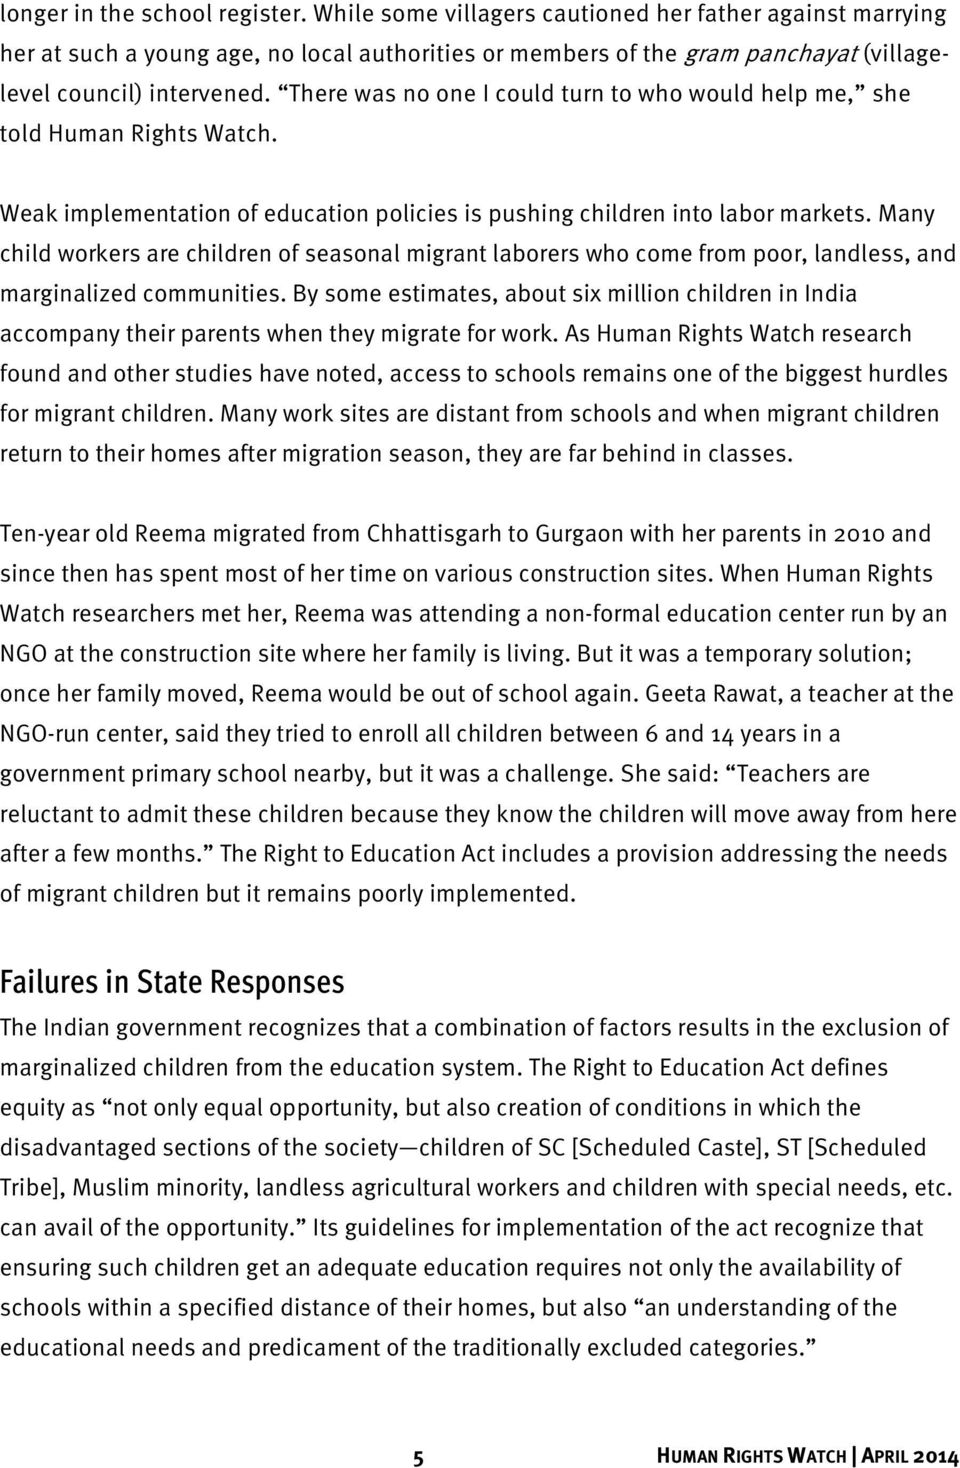 There was no one I could turn to who would help me, she told Human Rights Watch. Weak implementation of education policies is pushing children into labor markets.